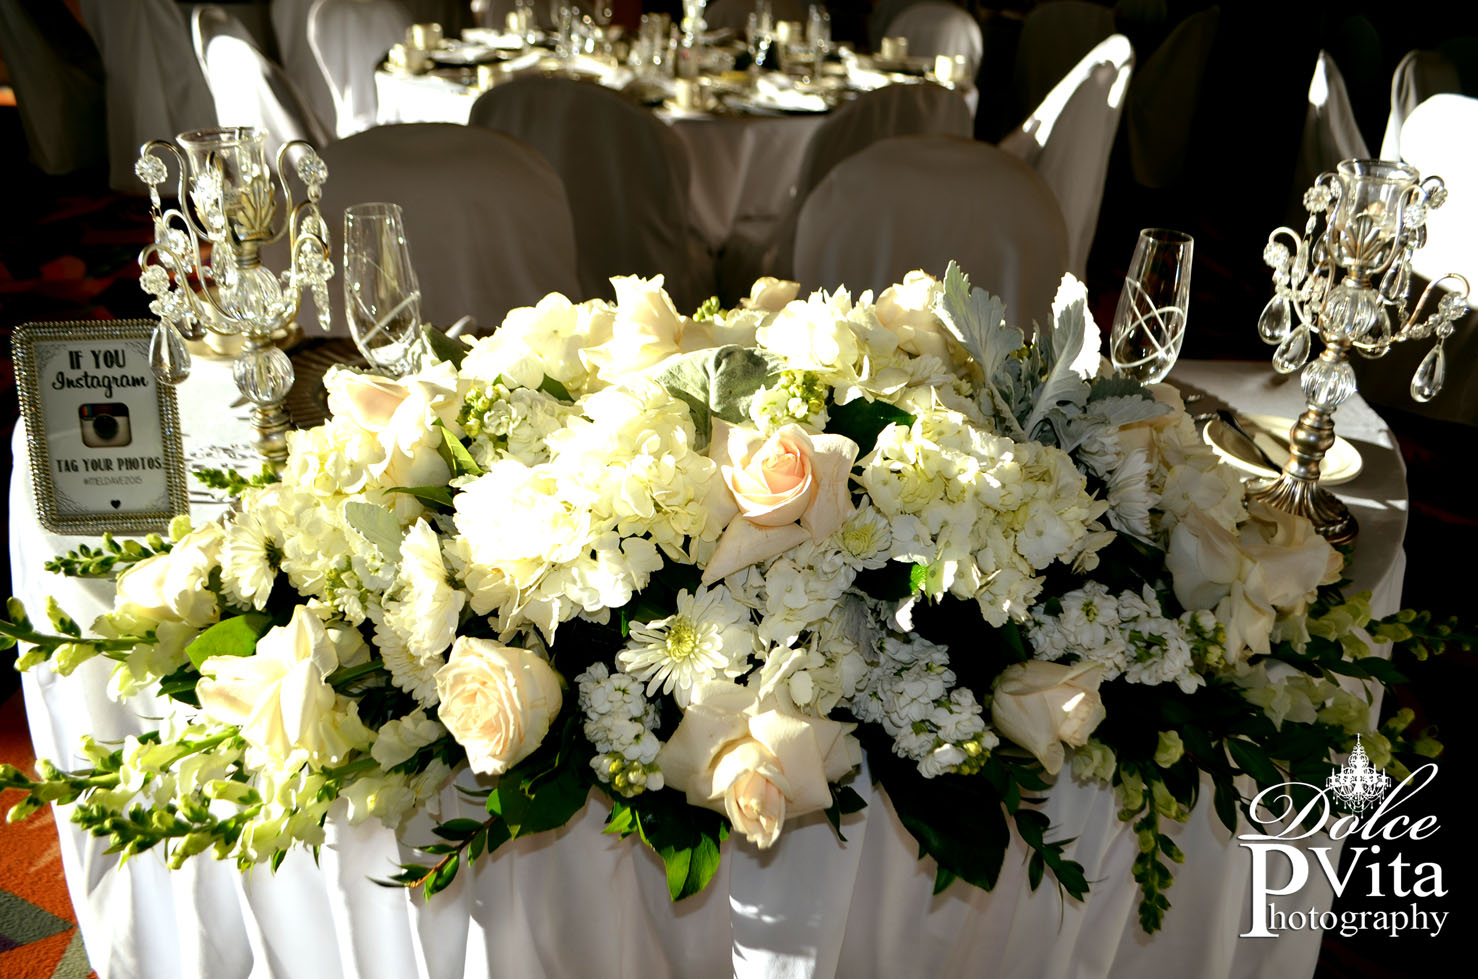 Dolce Vita Floral and Event Design